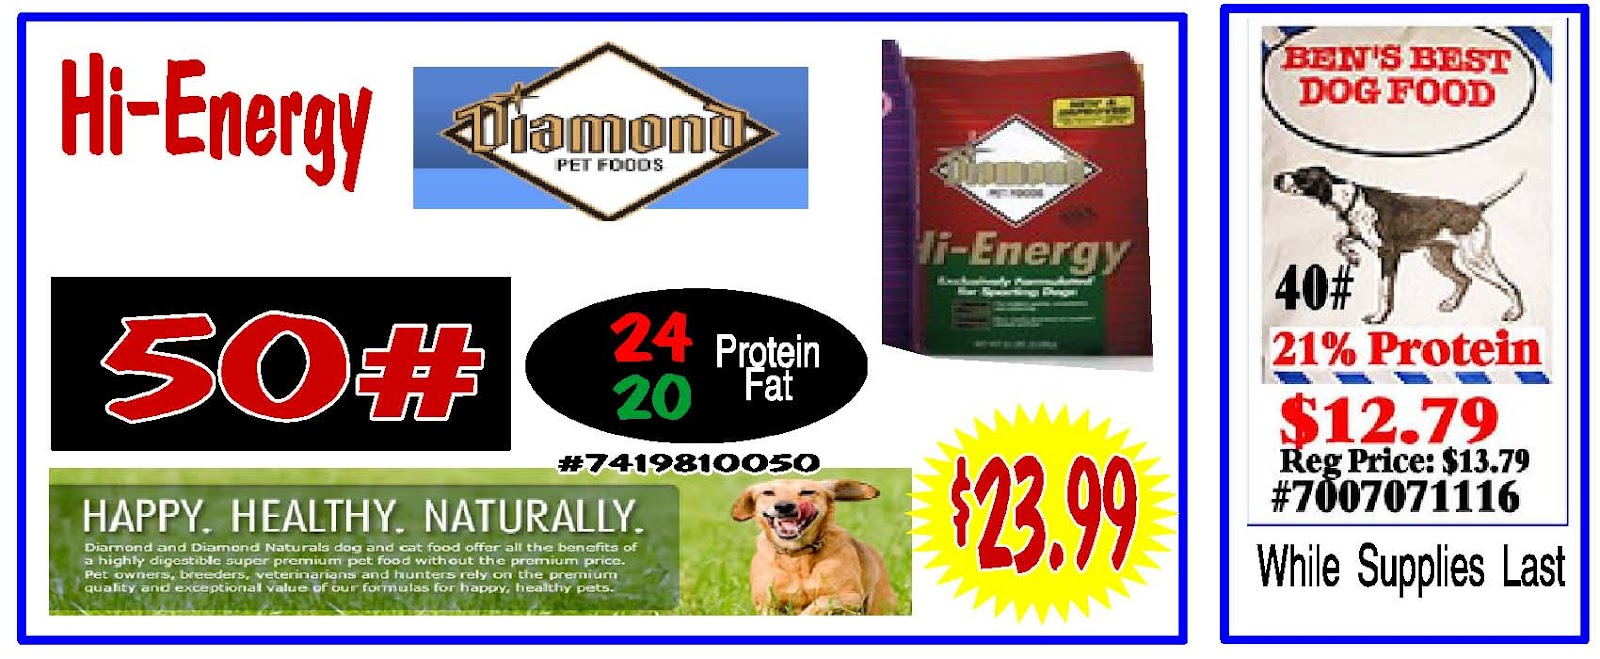 Ben s best dog food is a very affordable dog food but still maintains